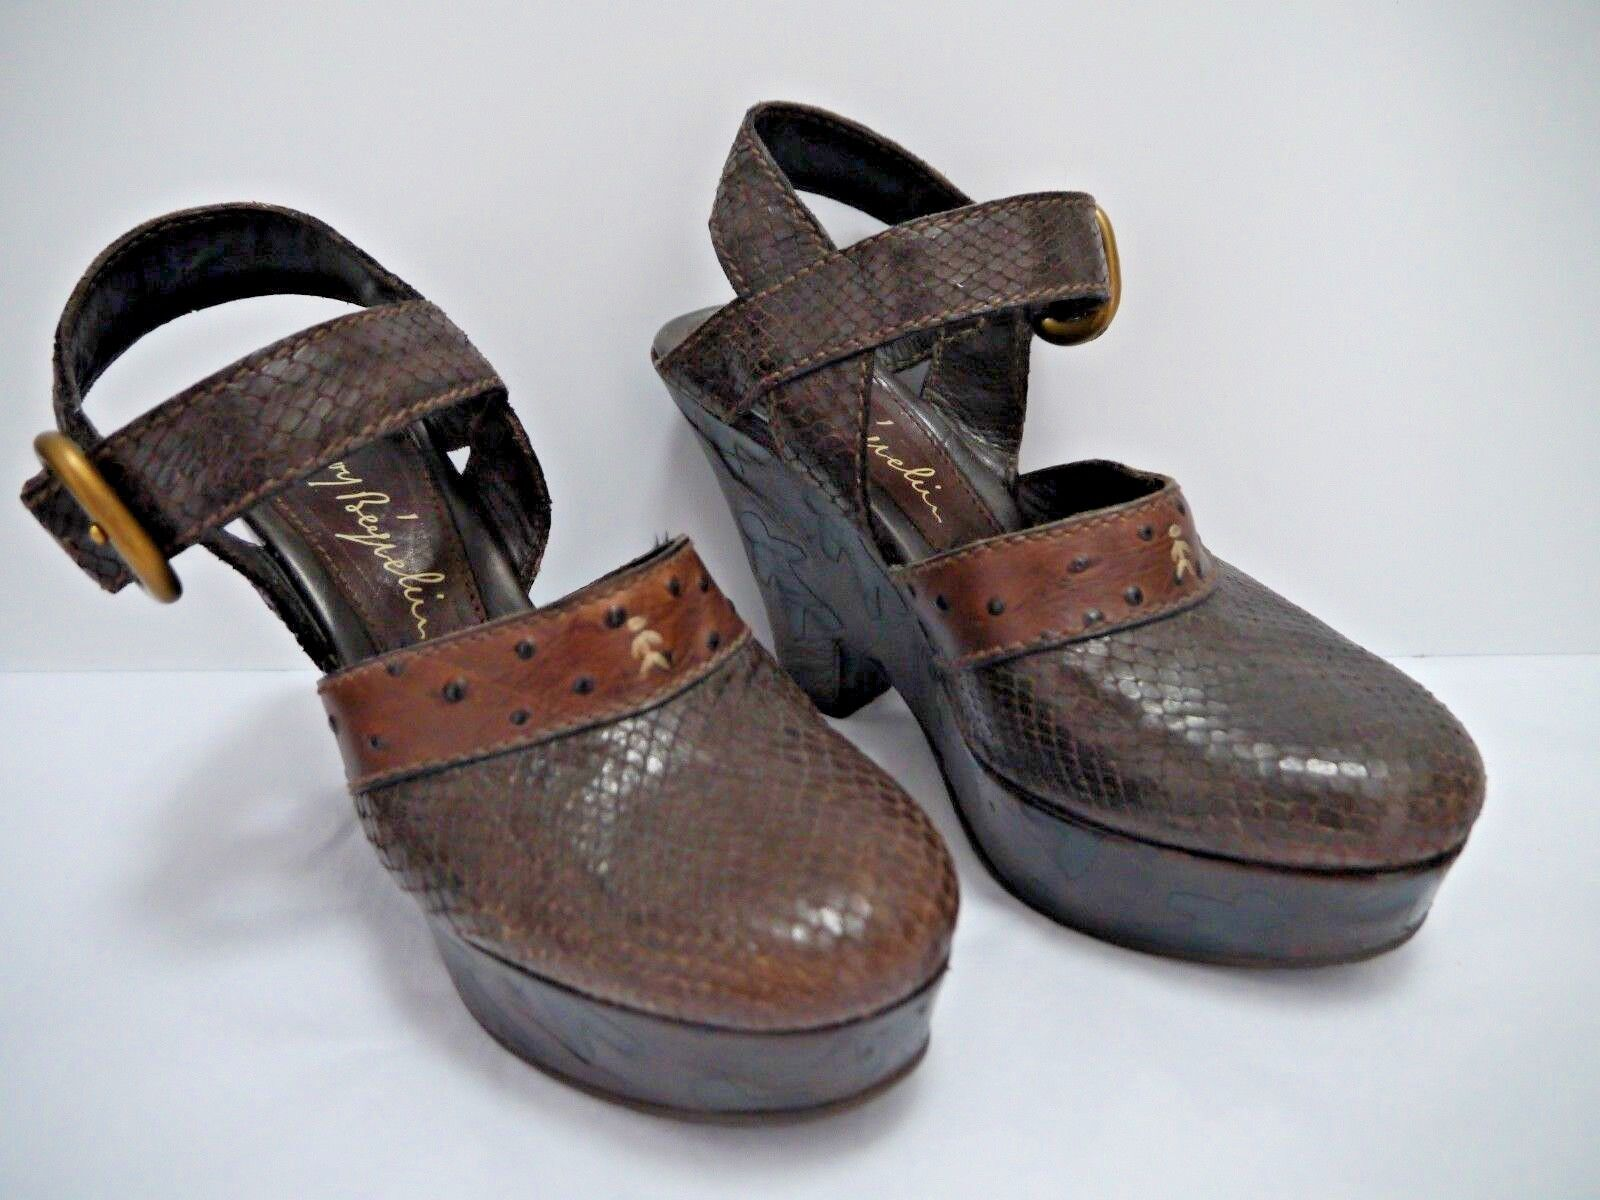 HENRY BEGUELIN brown snake texture leather figure logo wedge heels clogs size 37